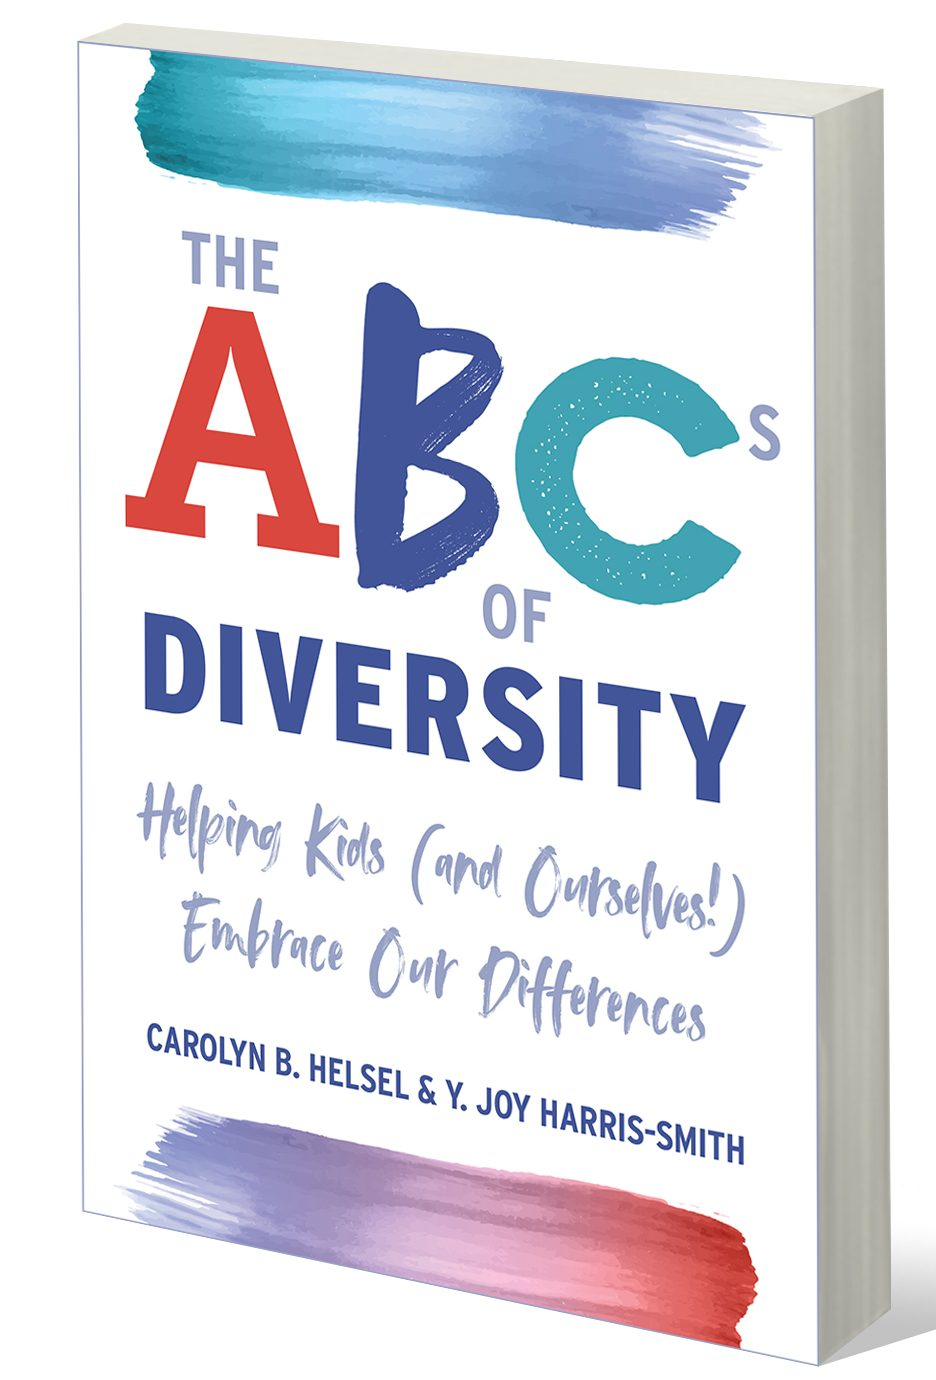 The ABCs of Diversity